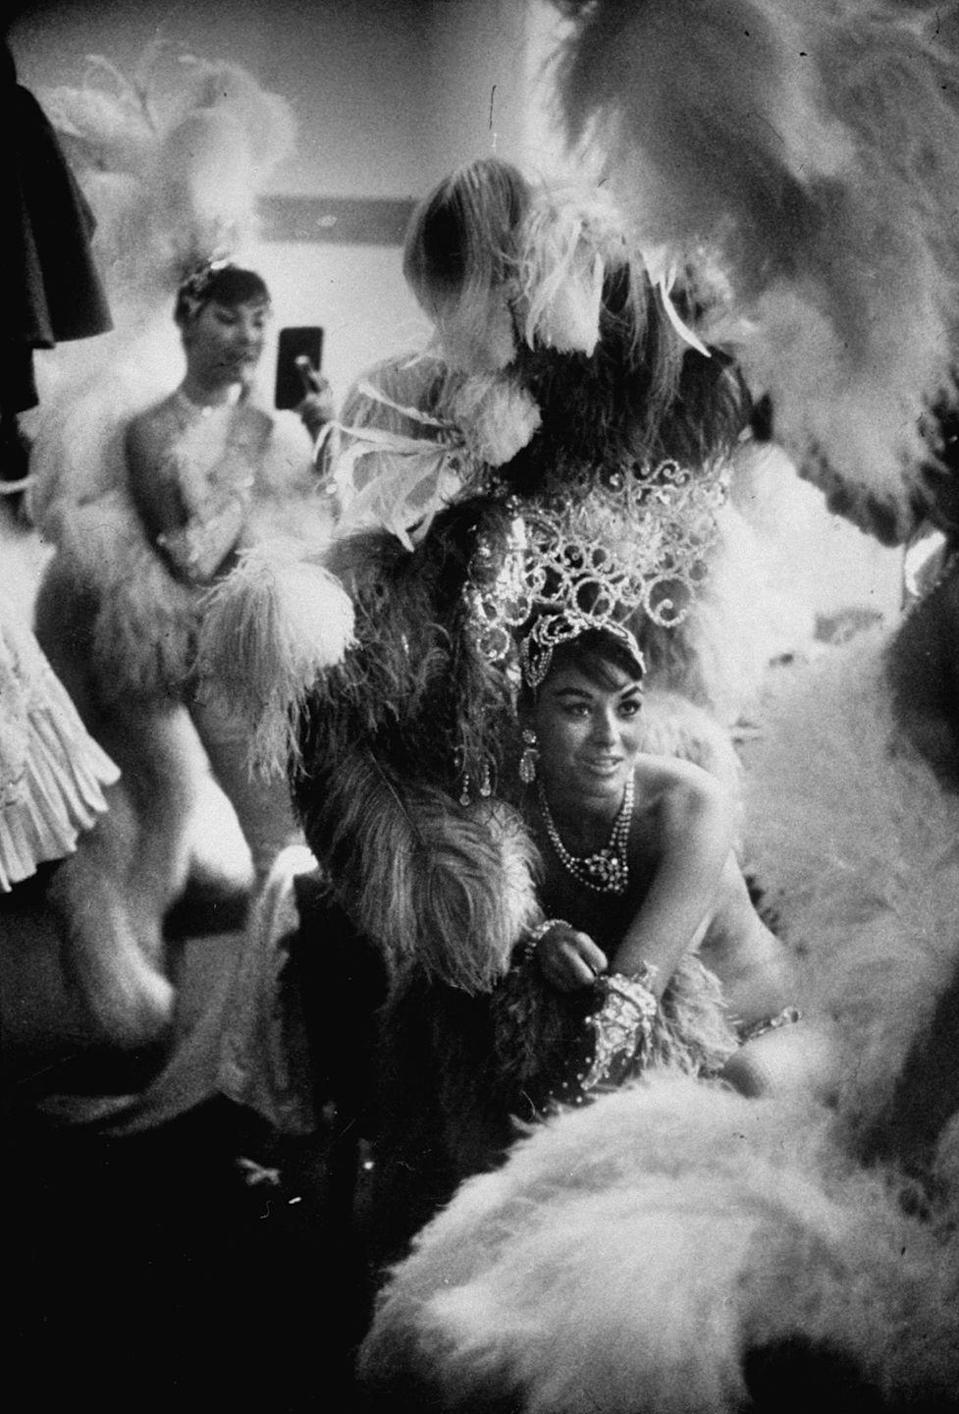 """<p>Showgirls in the dressing room of the Stardust Hotel in 1958. From 1959 to 1964, the hotel's convention center was reserved for """"high roller"""" guests and The Stardust showgirls.</p>"""